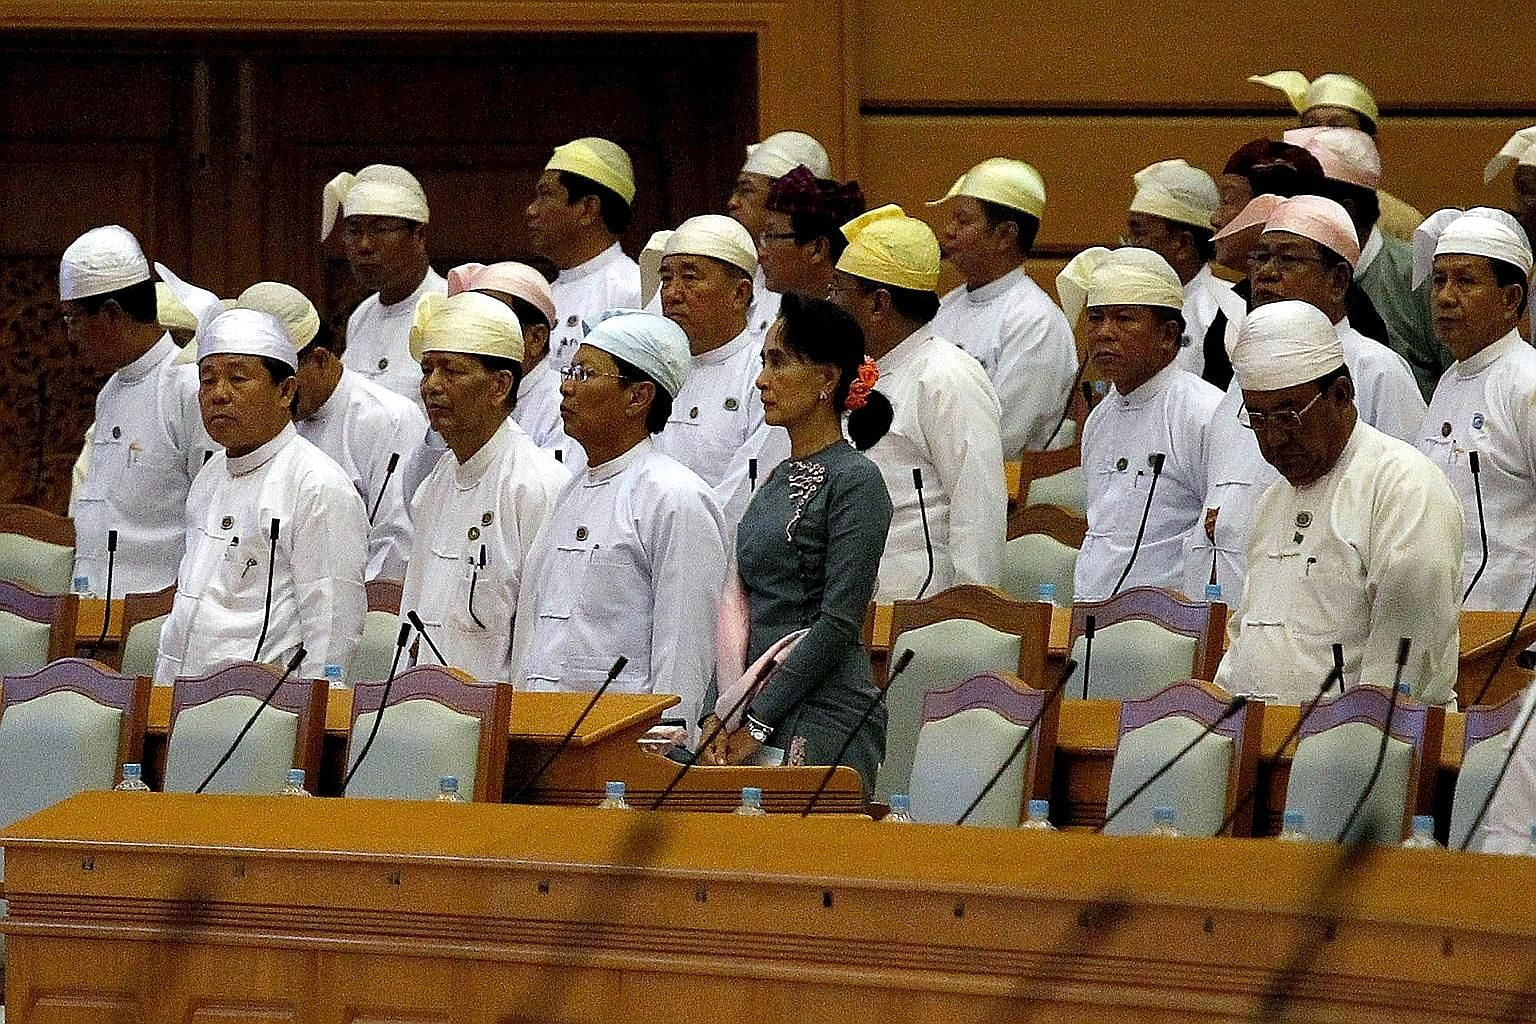 National League for Democracy leader Aung San Suu Kyi attending Myanmar's first Parliament meeting after the Nov 8 general election. After her party's landslide victory, Asia is cautiously awaiting the shape of the government to be formed at the end